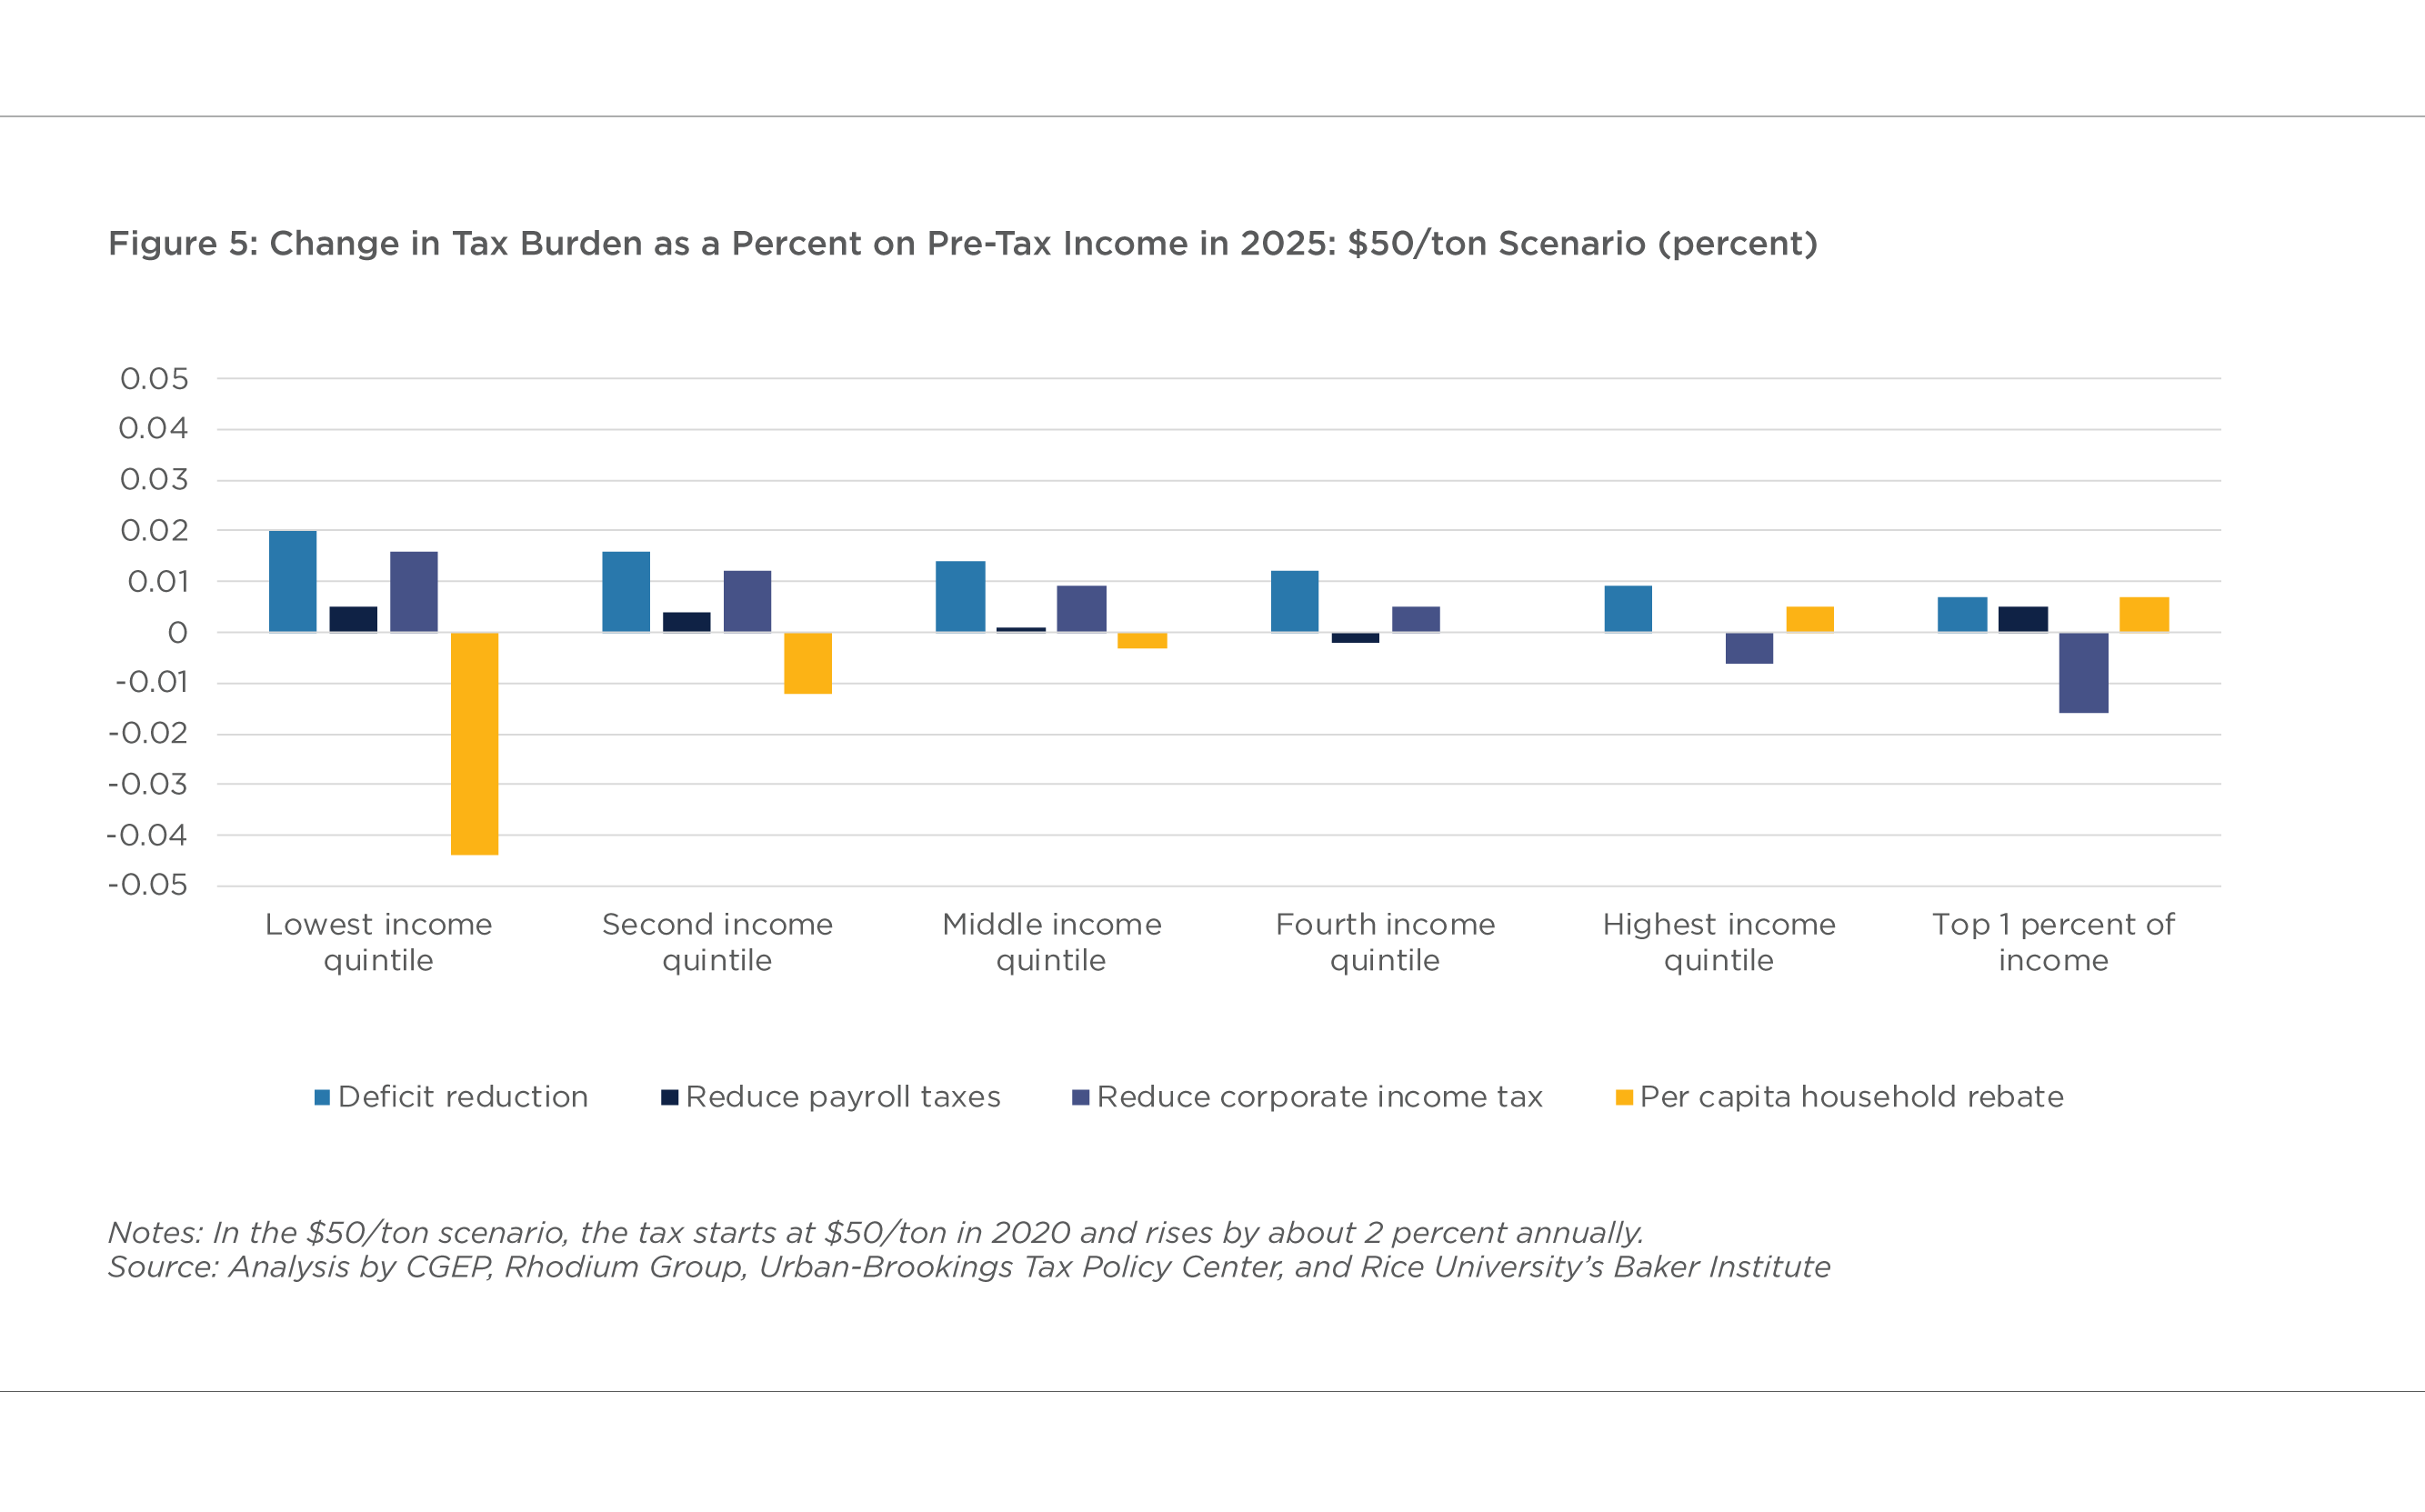 FIGURE 5: CHANGE IN TAX BURDEN AS A PERCENT ON PRE-TAX INCOME IN 2025: $50/TON SCENARIO (PERCENT)